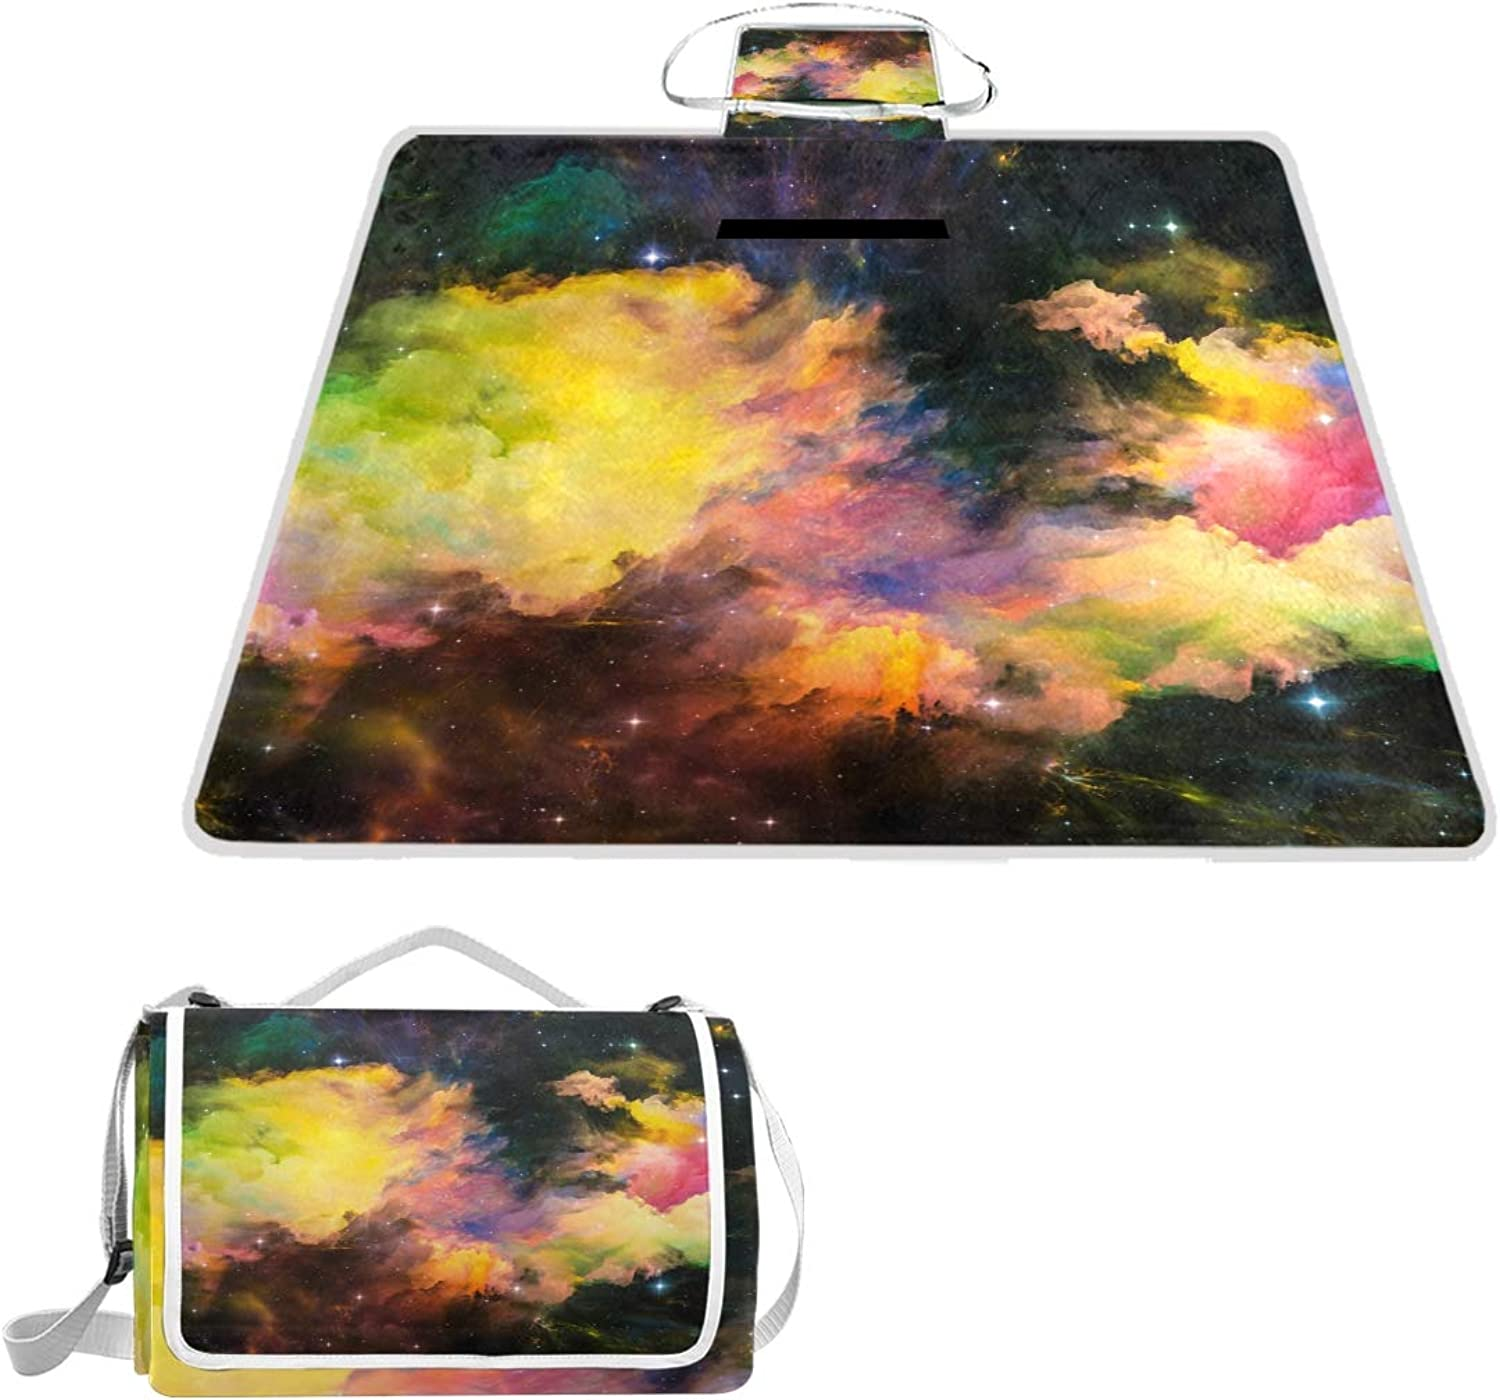 MASSIKOA Nebula Galaxy Space Starry Picnic Blanket Waterproof Outdoor Blanket Foldable Picnic Handy Mat Tote for Beach Camping Hiking